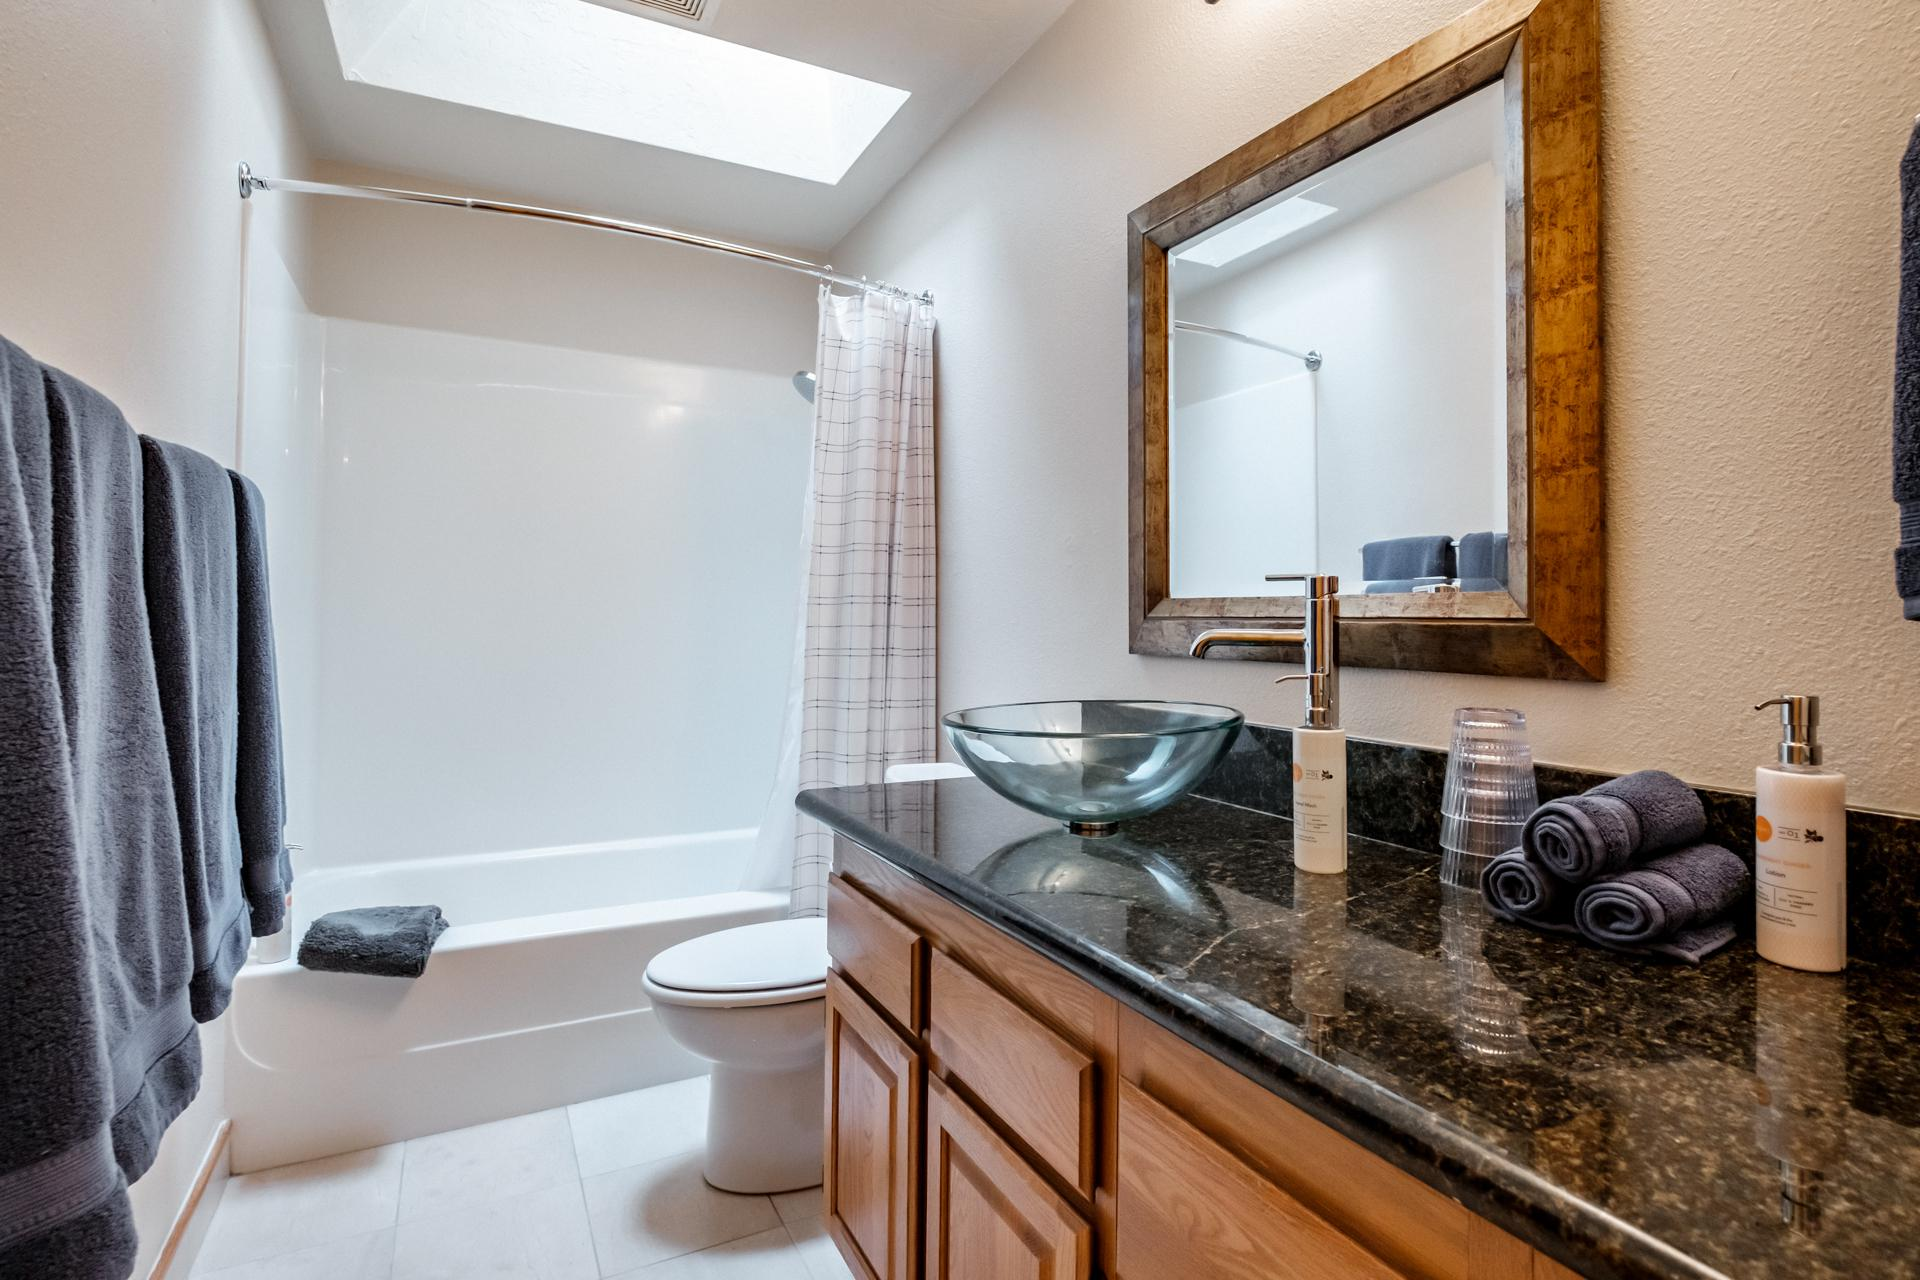 Spacious hall bathroom shared by bedroom 1 and bedroom 2